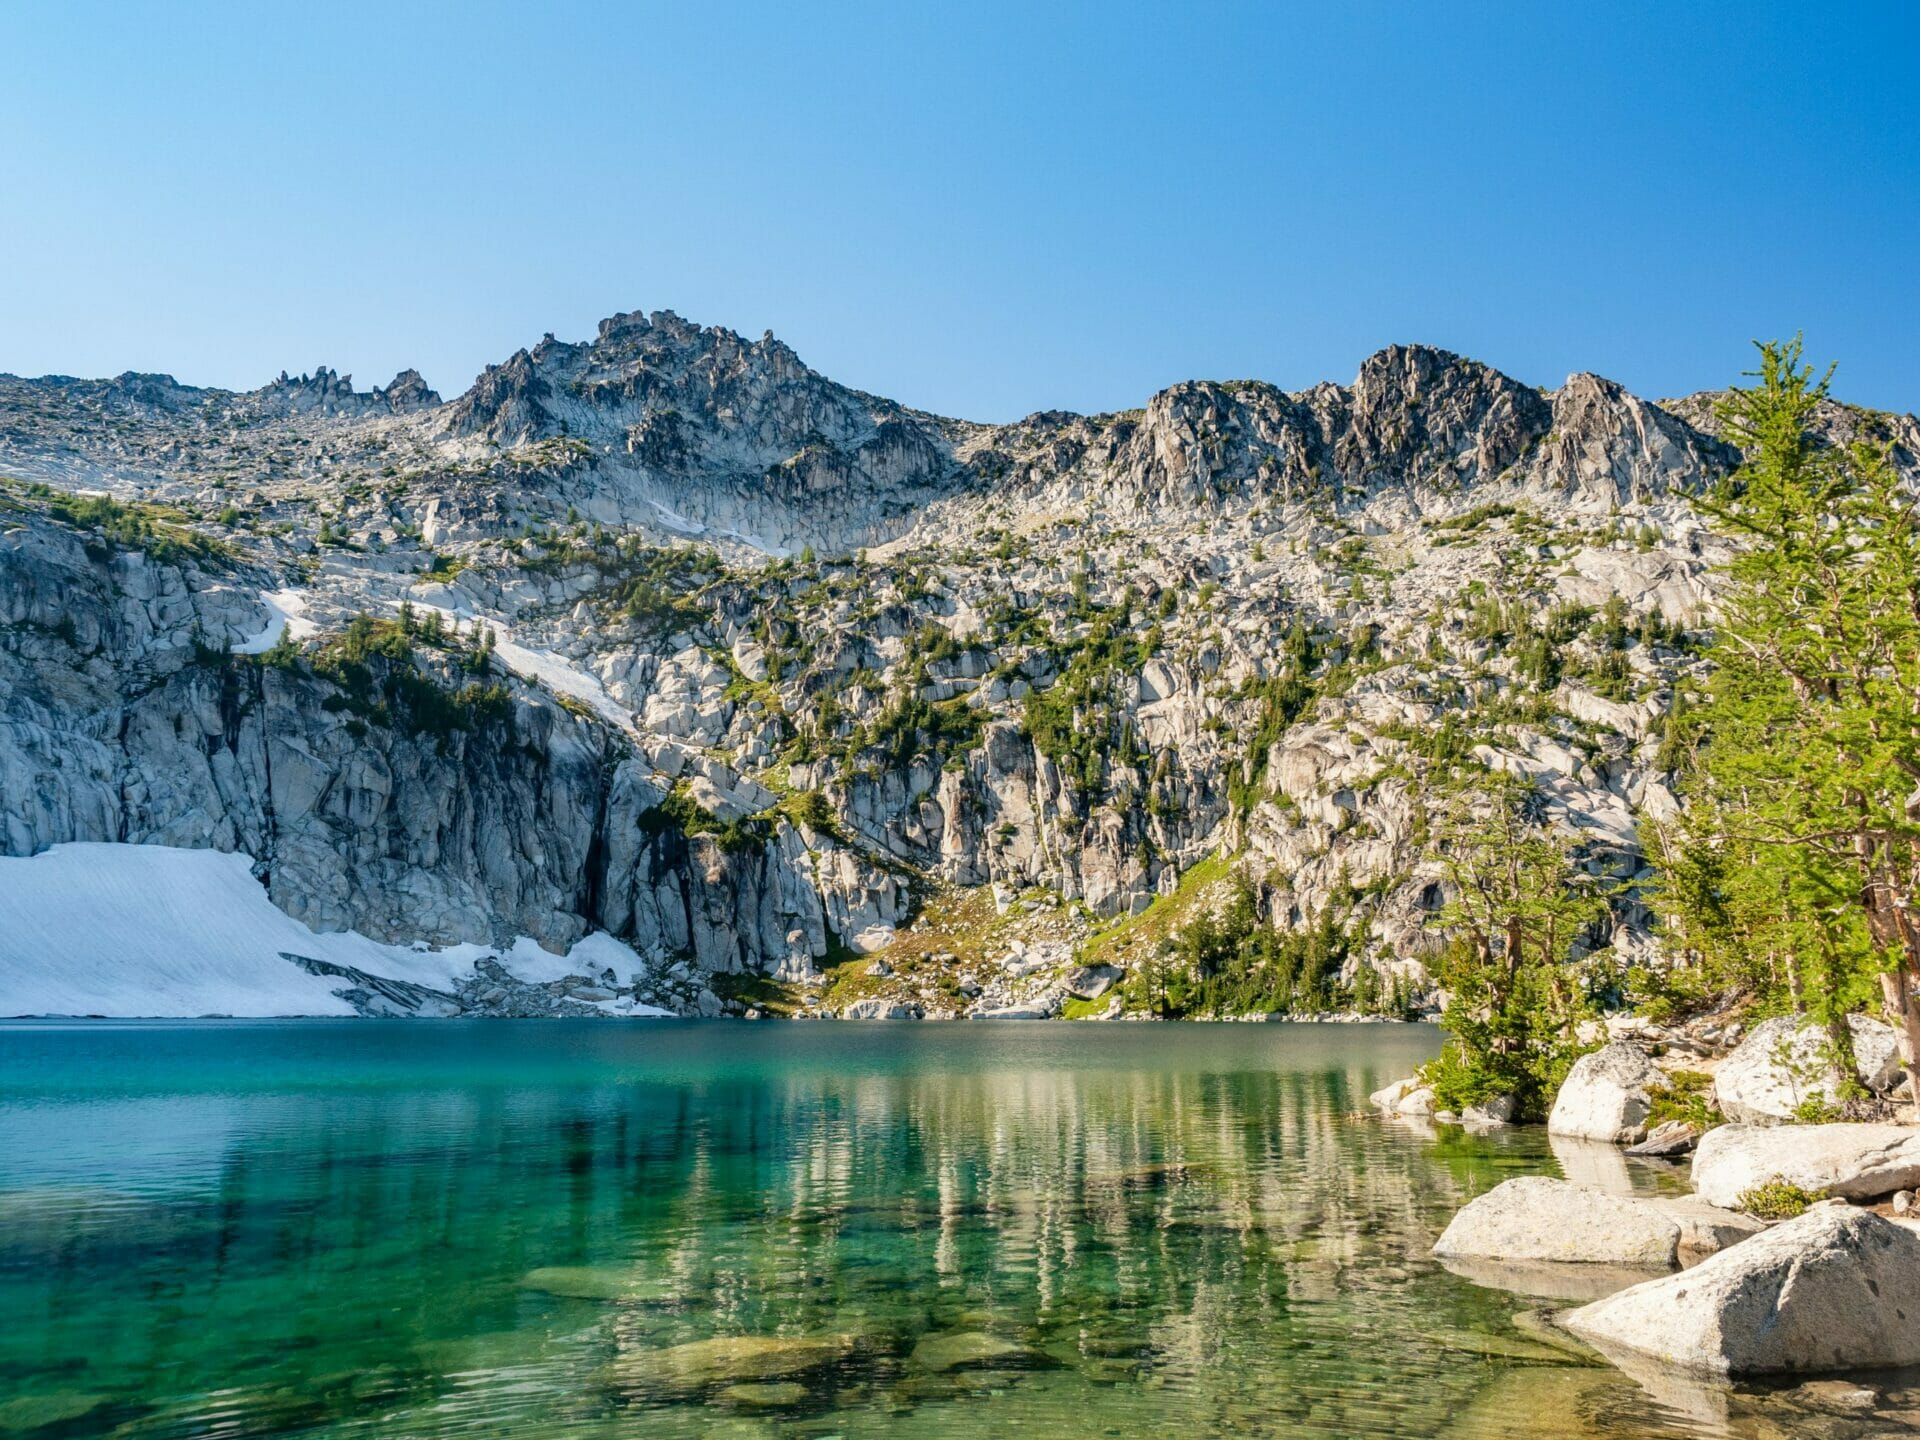 Enchantments day hike thru-hike in 1 day Alpine Lakes